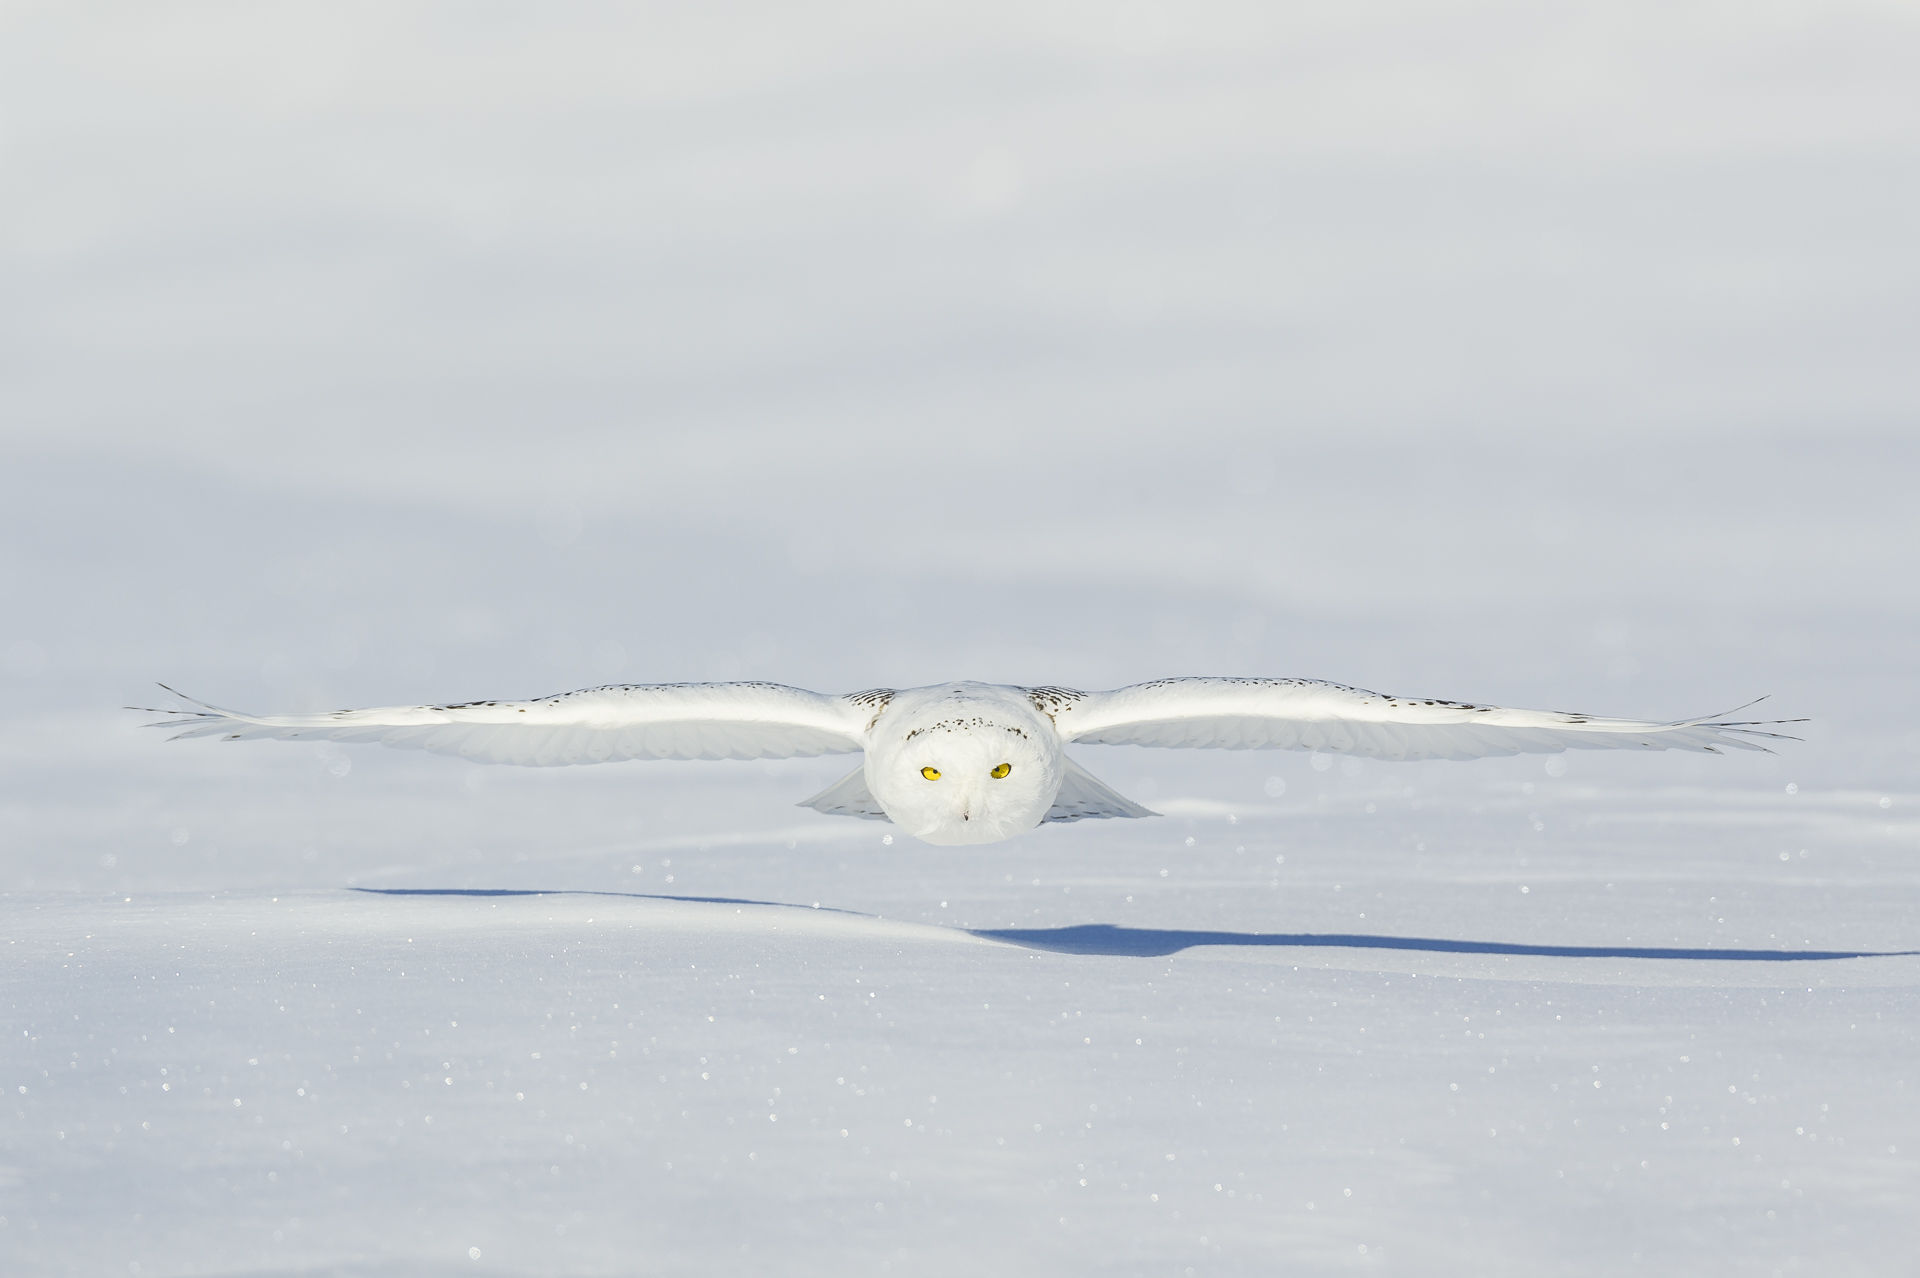 Under the radar: snowy owl